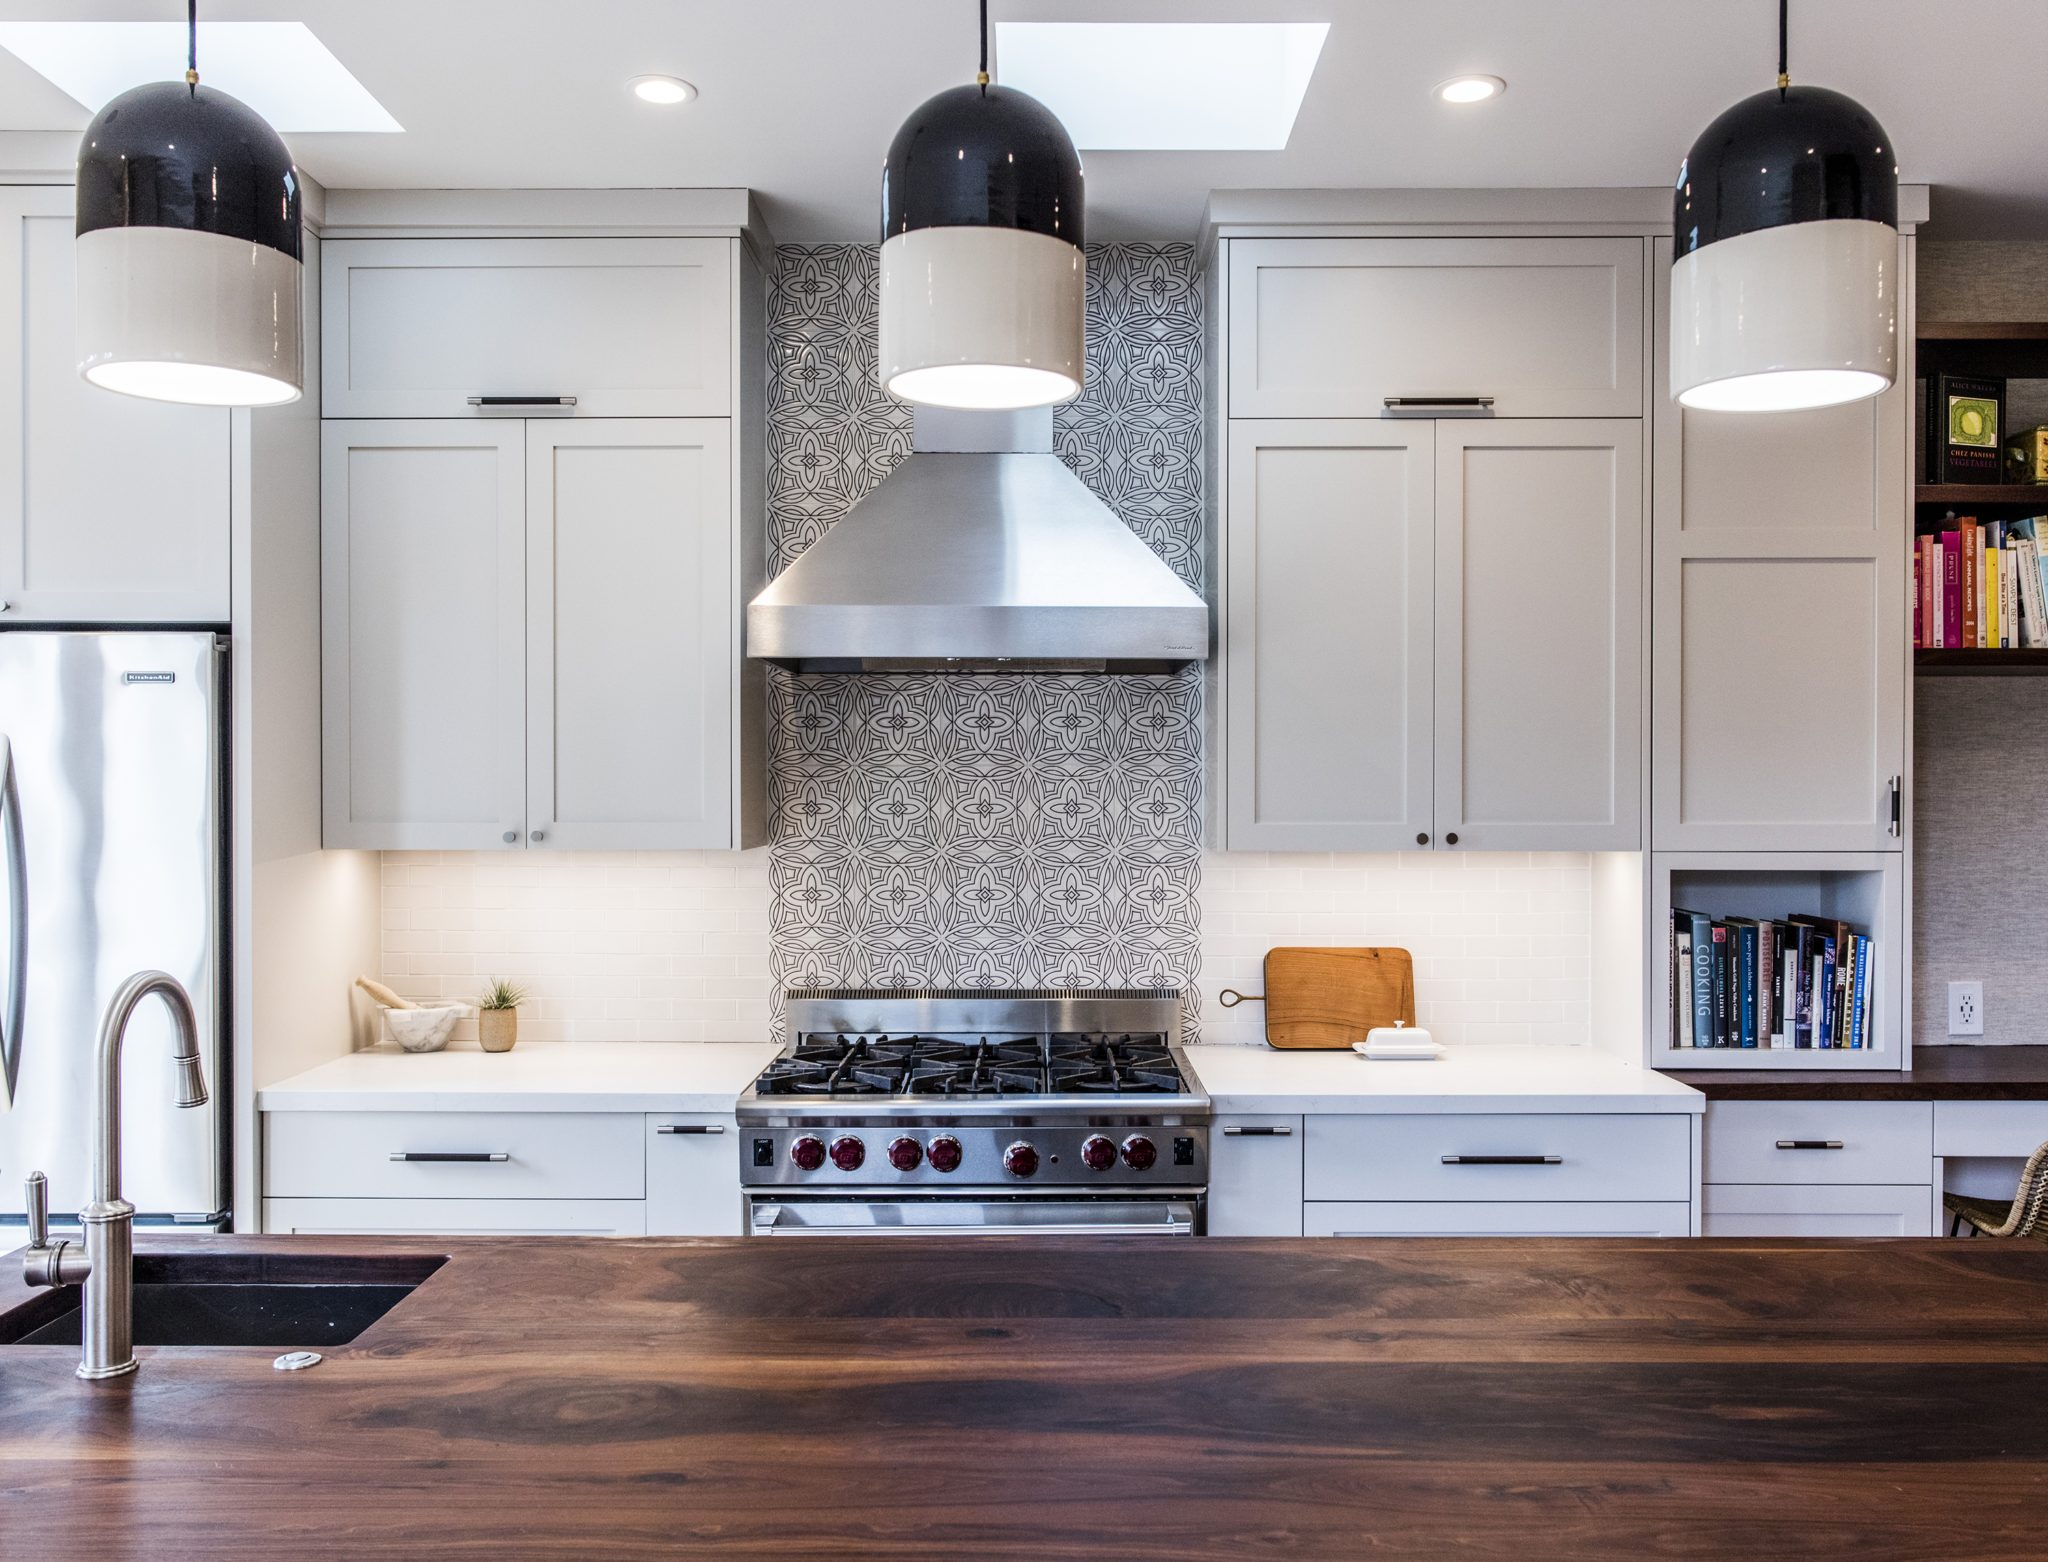 19th Ave Kitchen by K Interiors